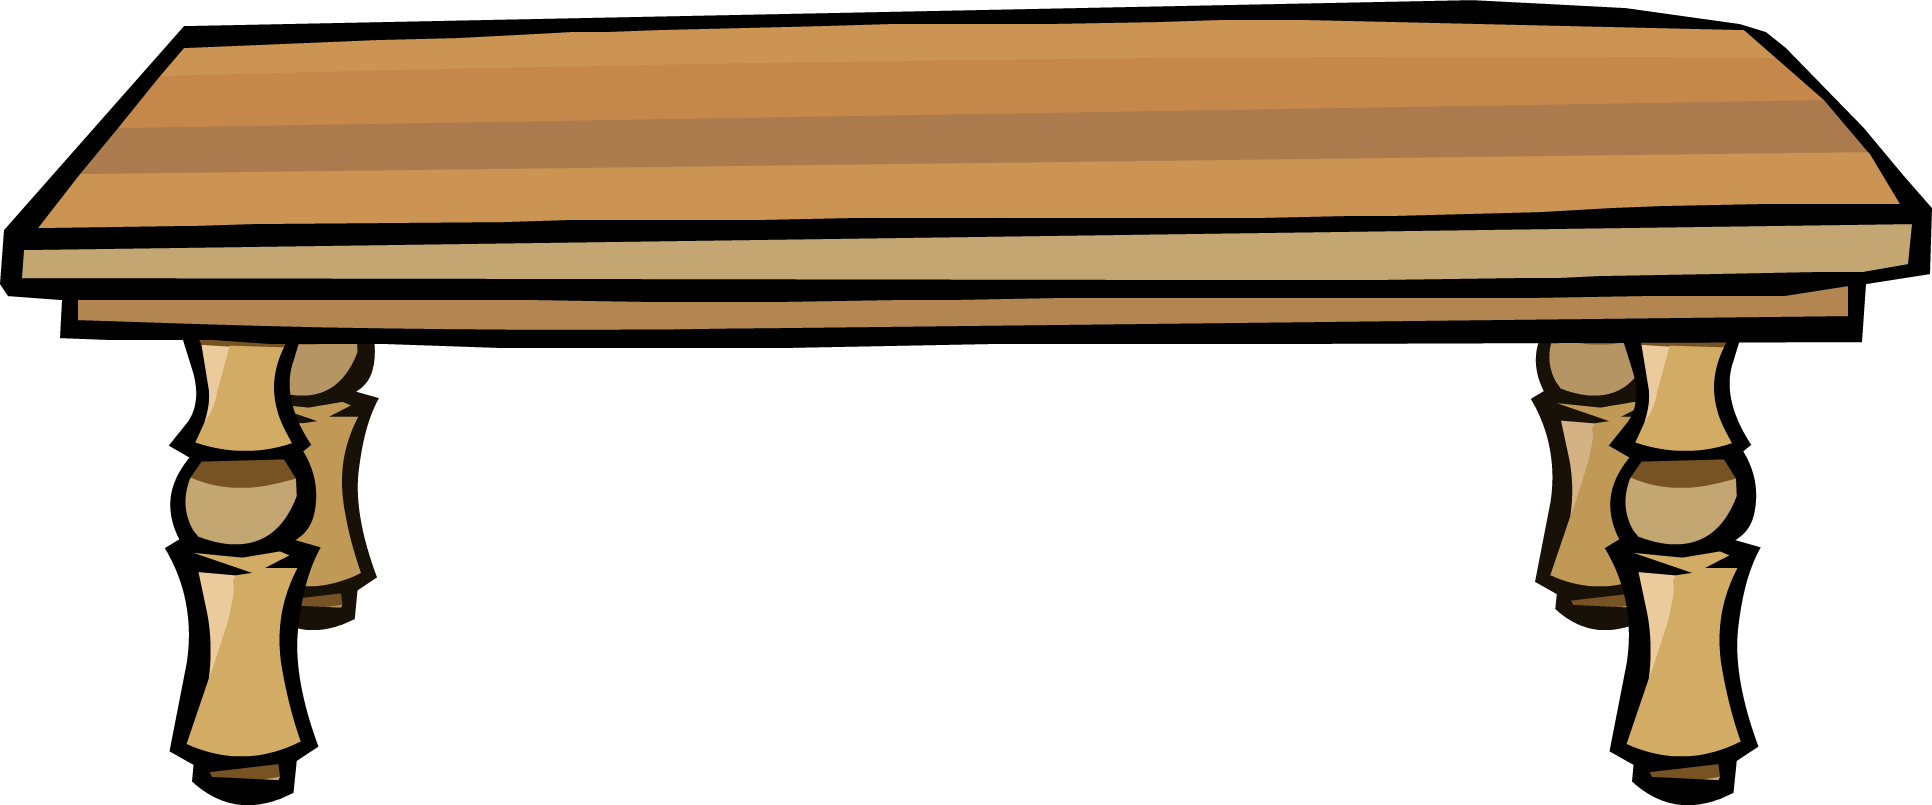 Image club penguin wiki. Dinner table png picture freeuse